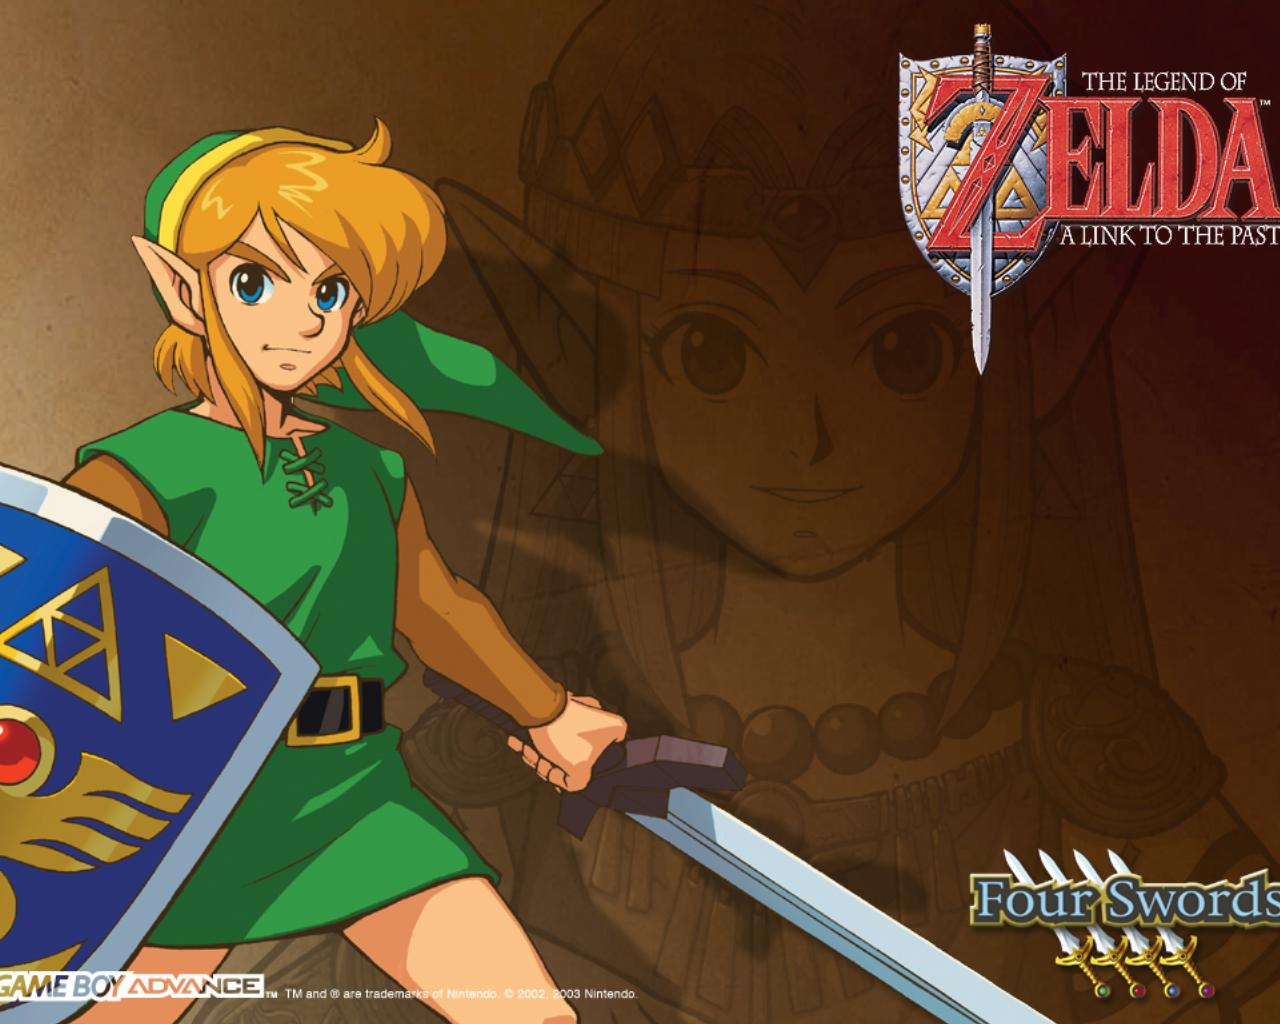 Zelda a Link to the Past   Official Wallpapers Desktops Backgrounds 1280x1024